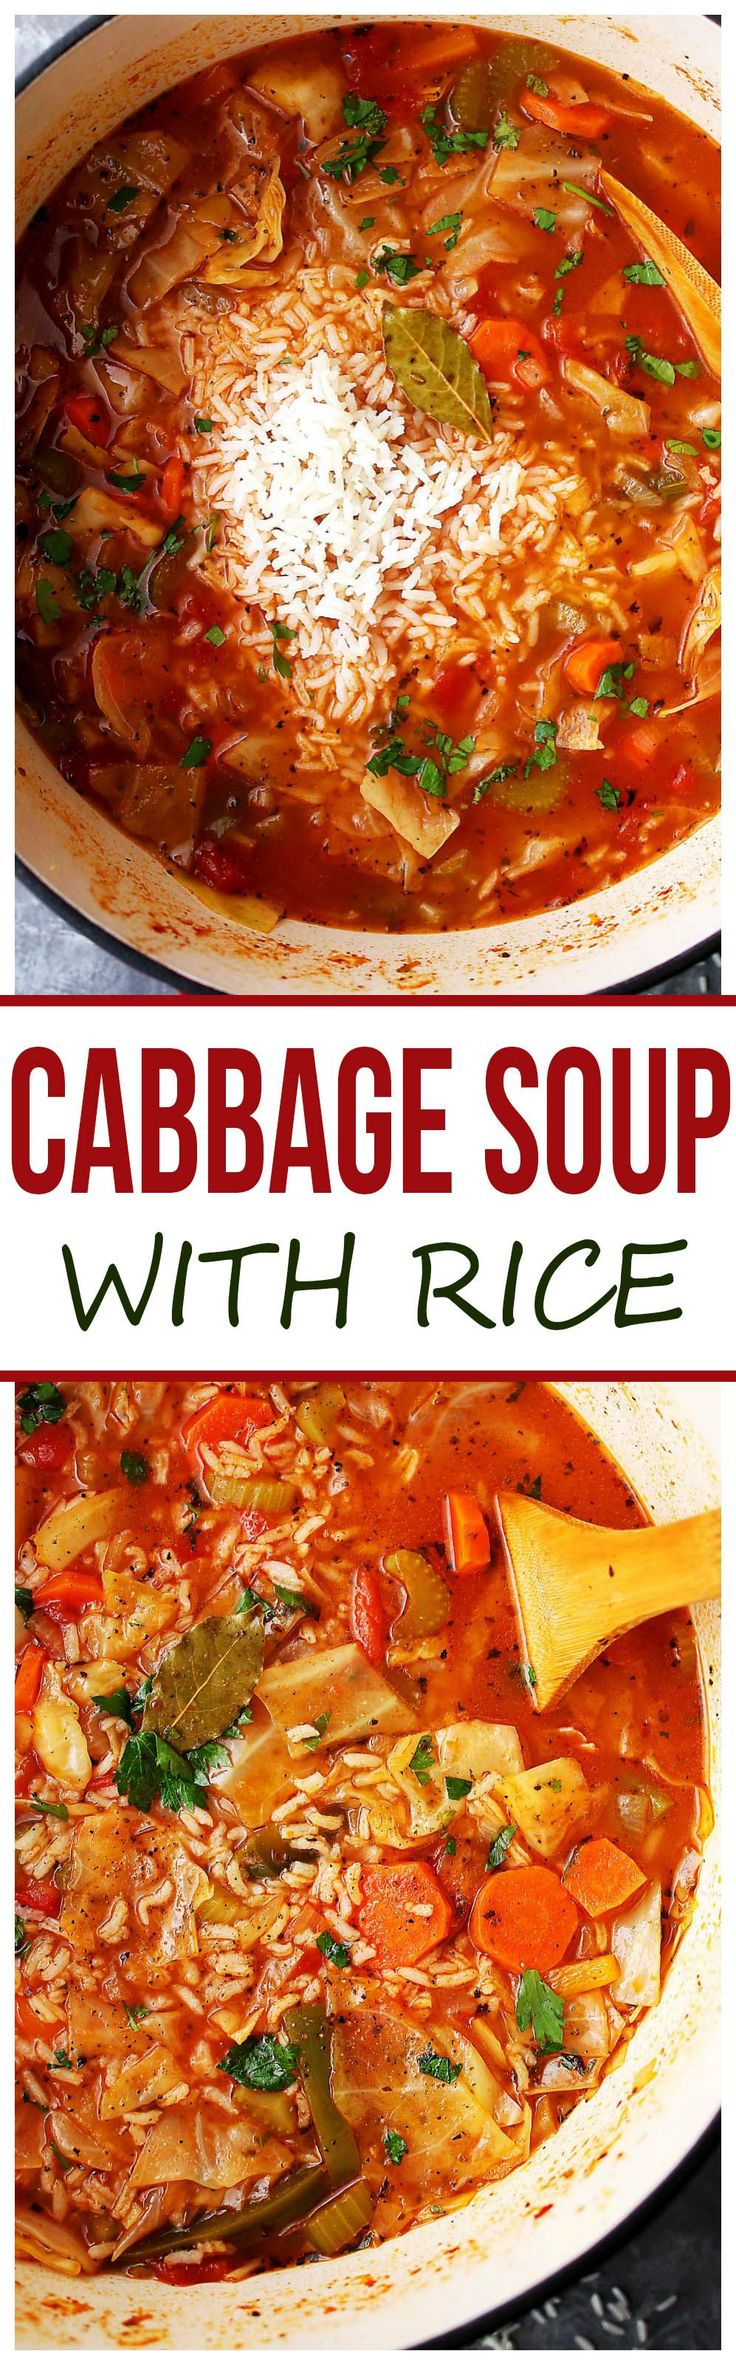 Cabbage Soup with Rice - Healthy, hearty and delicious cabbage soup with rice and vegetables. #ad @huntschef #HuntsDifference